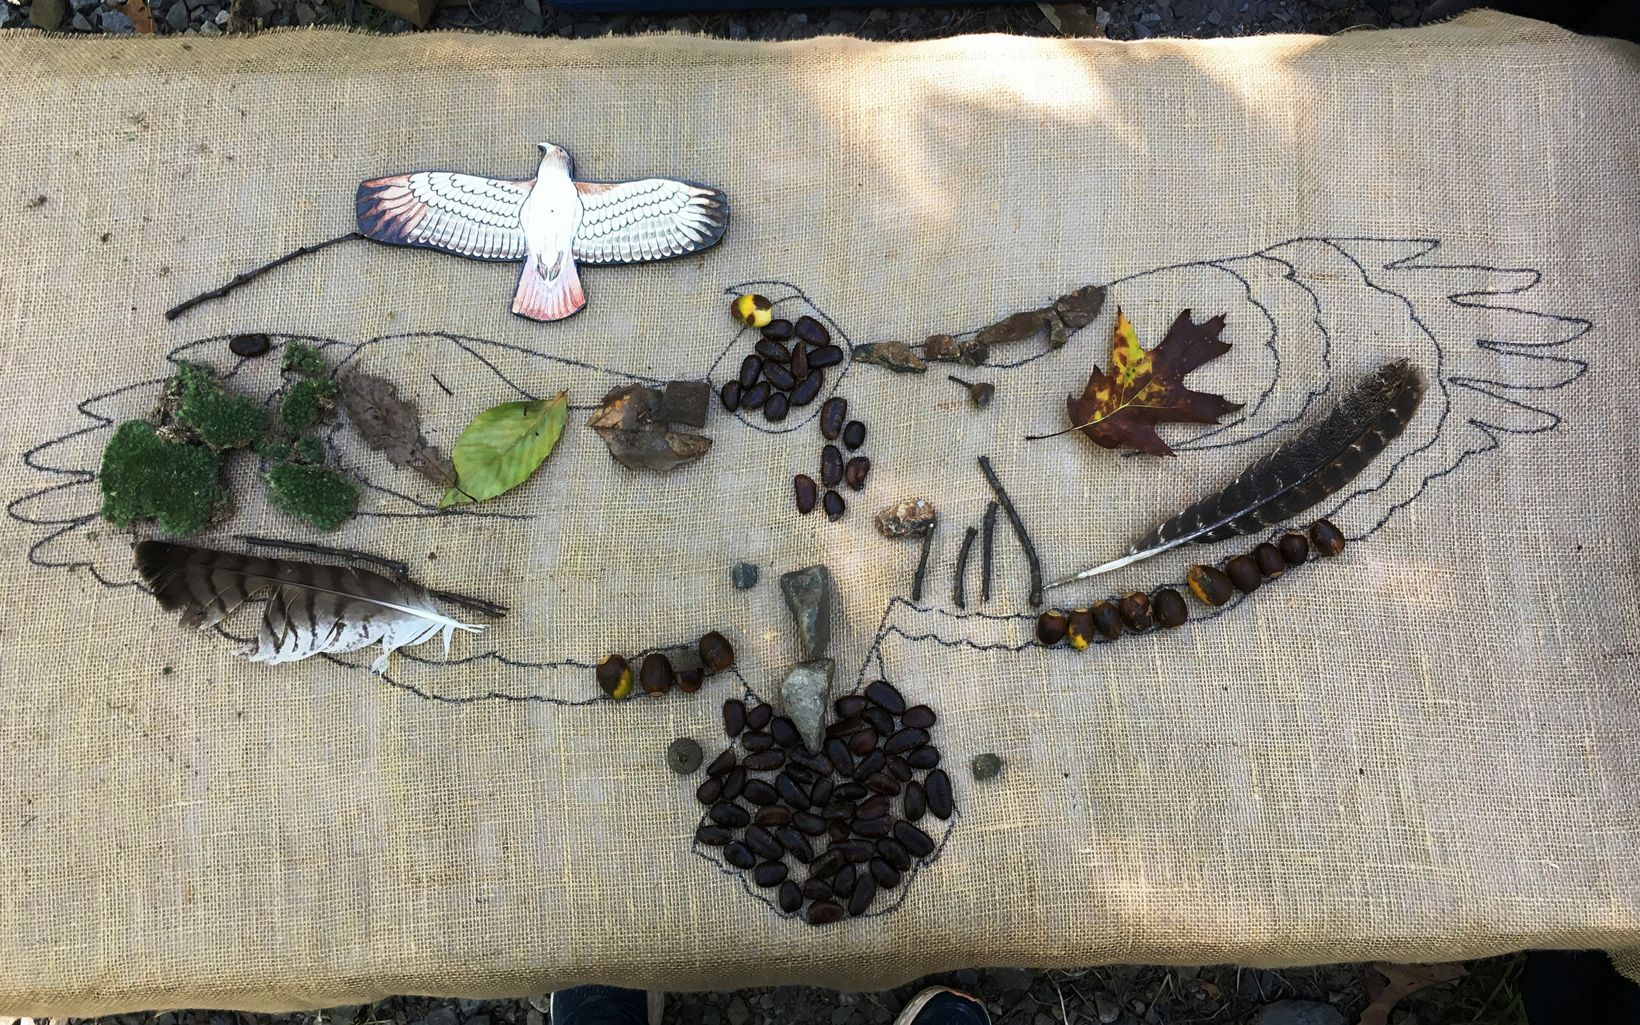 A collection of feathers, leaves, moss and other treasures.